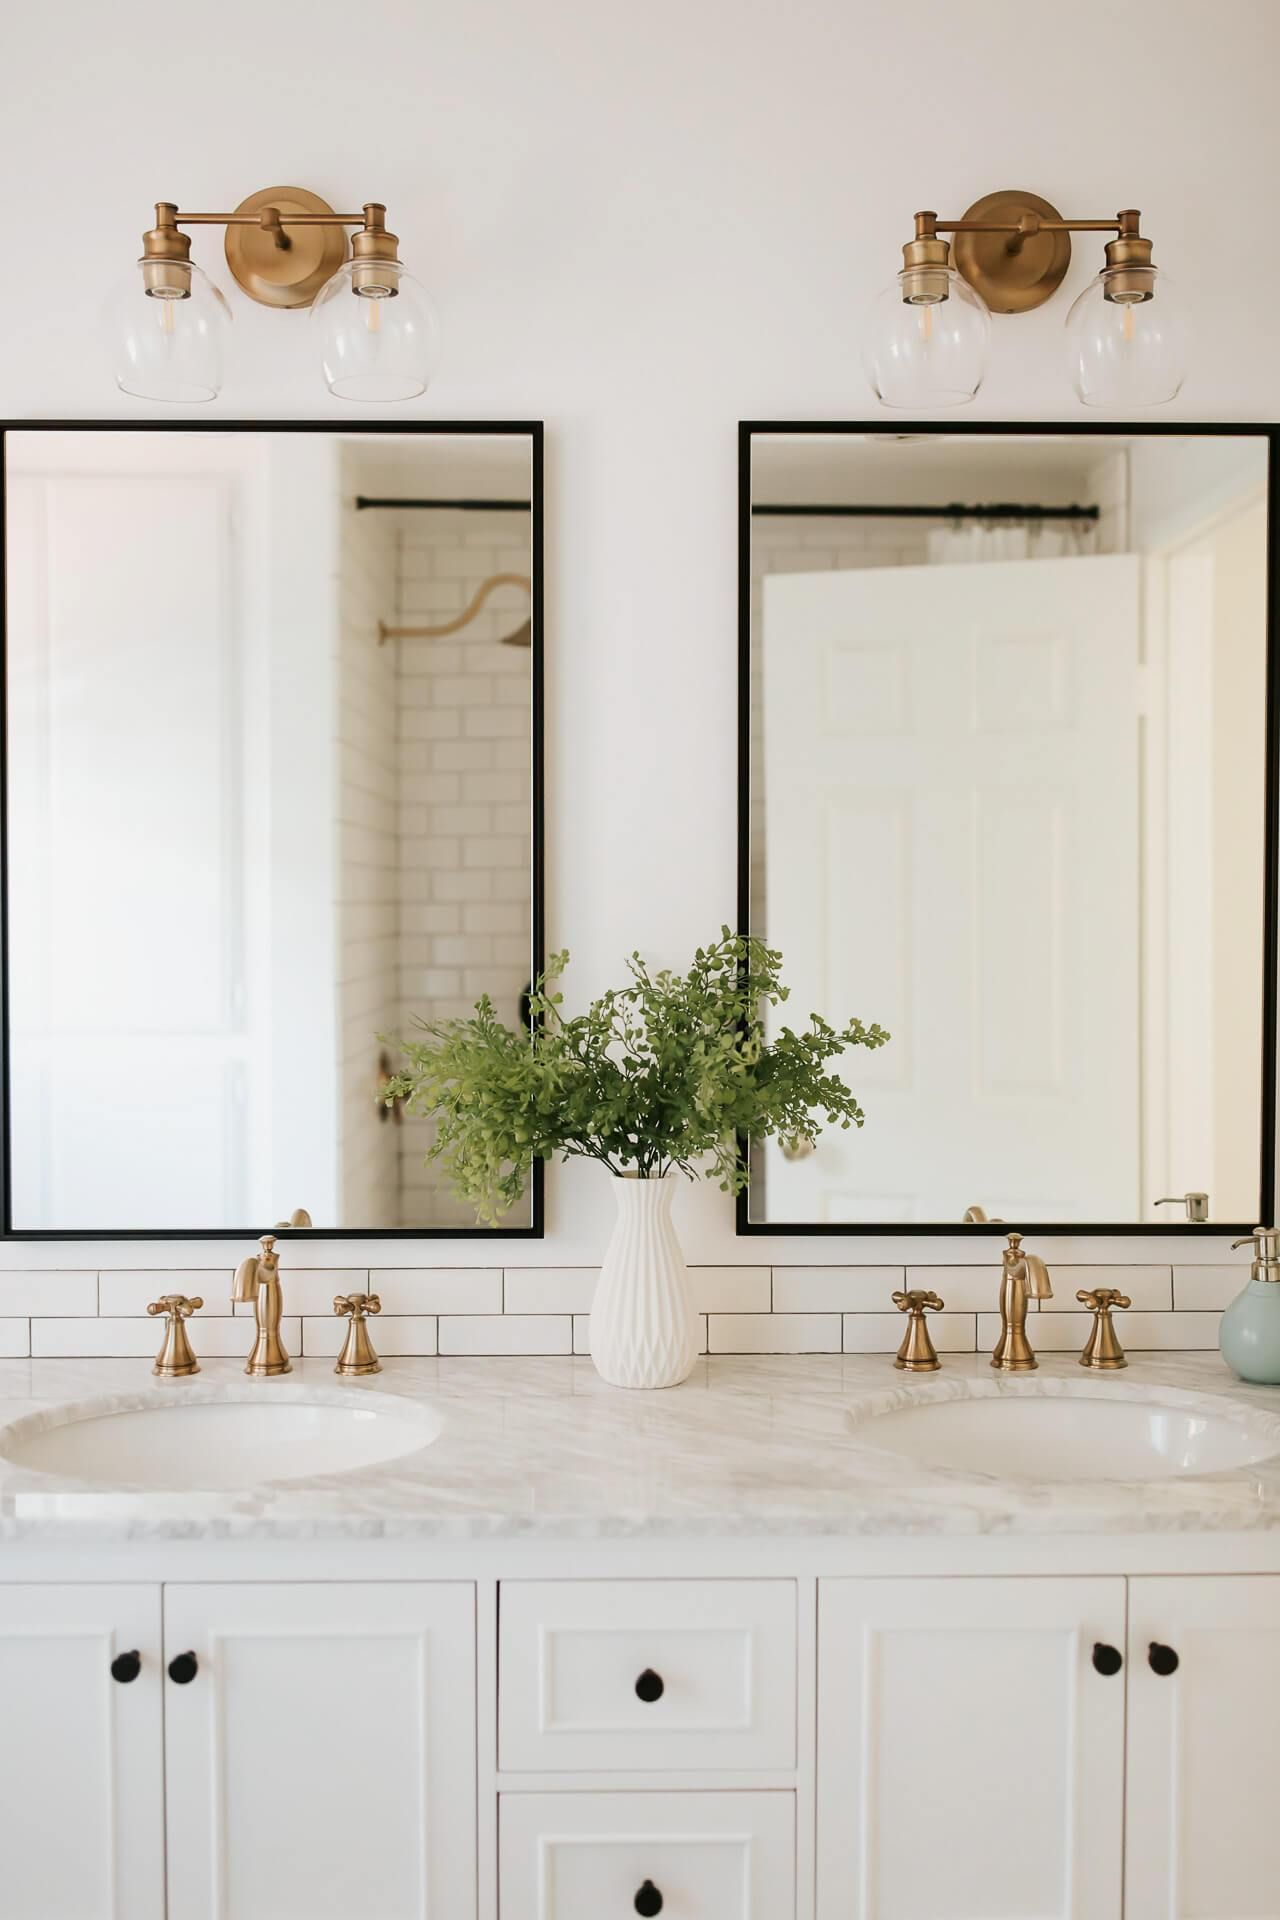 Before & After: Our Kids' Bathroom Design | M Loves M